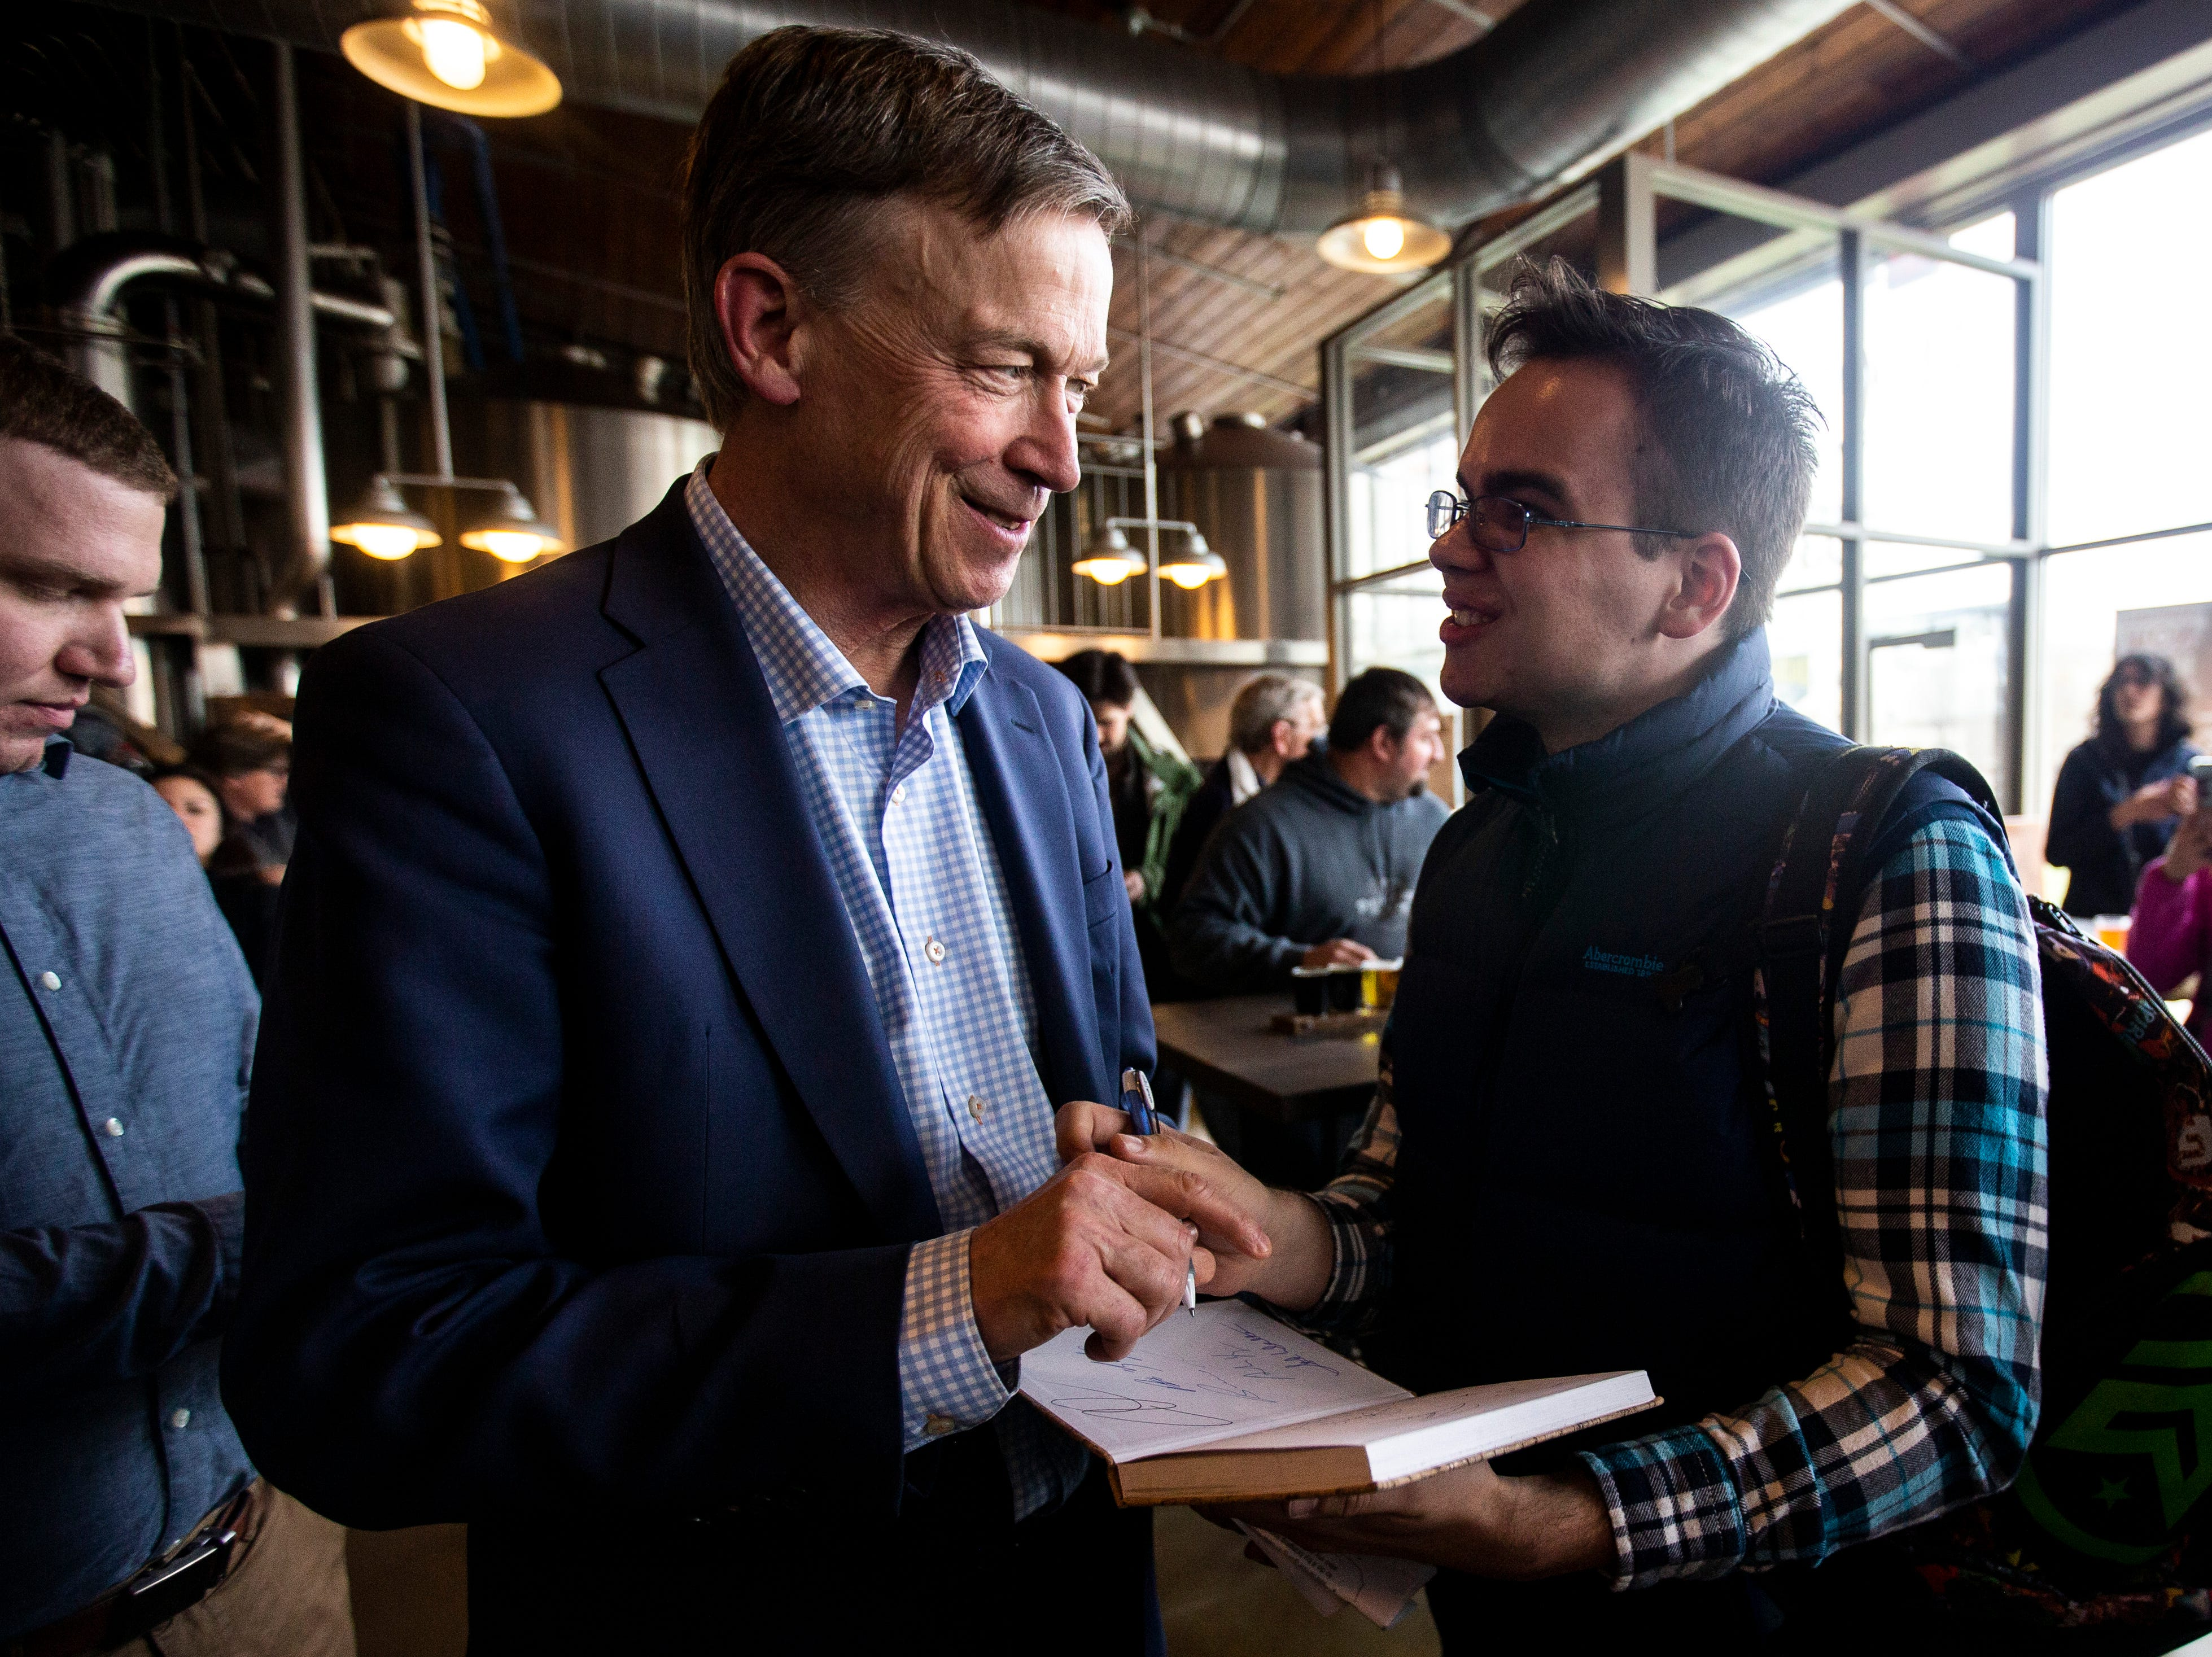 Democratic presidential candidate and former Colorado Gov. John Hickenlooper, left, signs a book for Teagan Roeder of Iowa City during an event on Friday, April 12, 2019, at Backpocket Brewing in Coralville, Iowa.